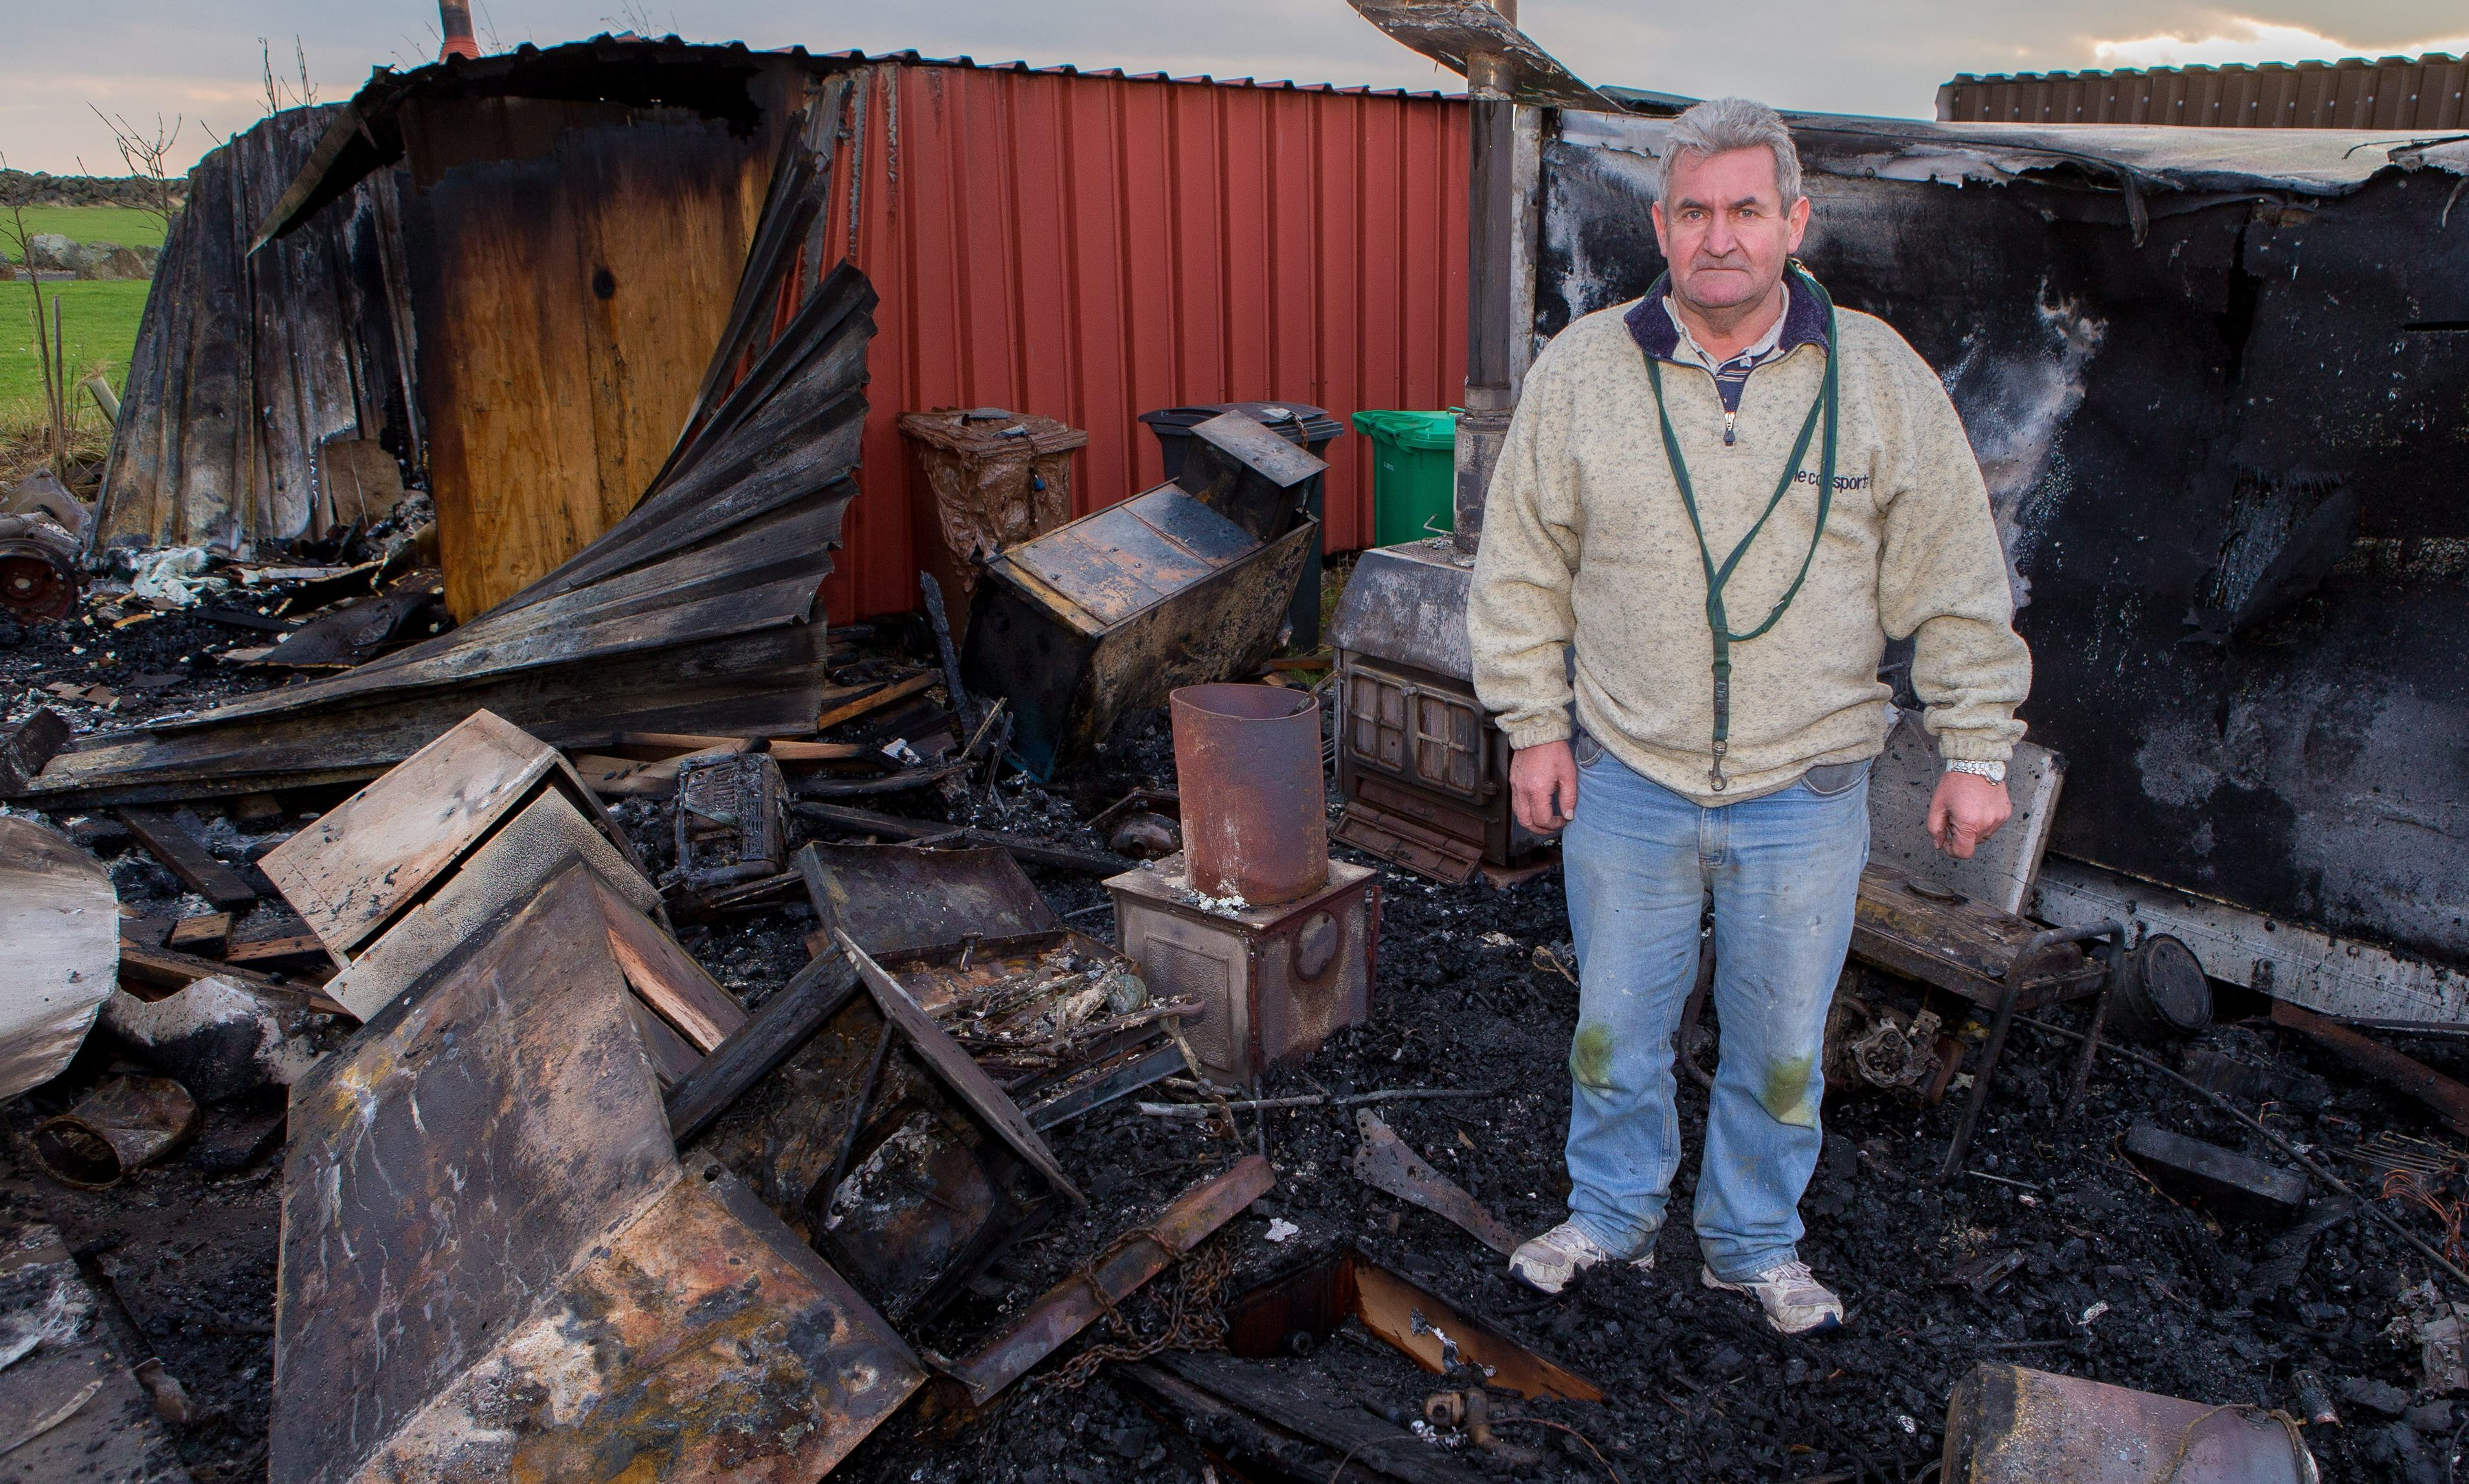 Roy Warrender, 60, in what's left of his shed.